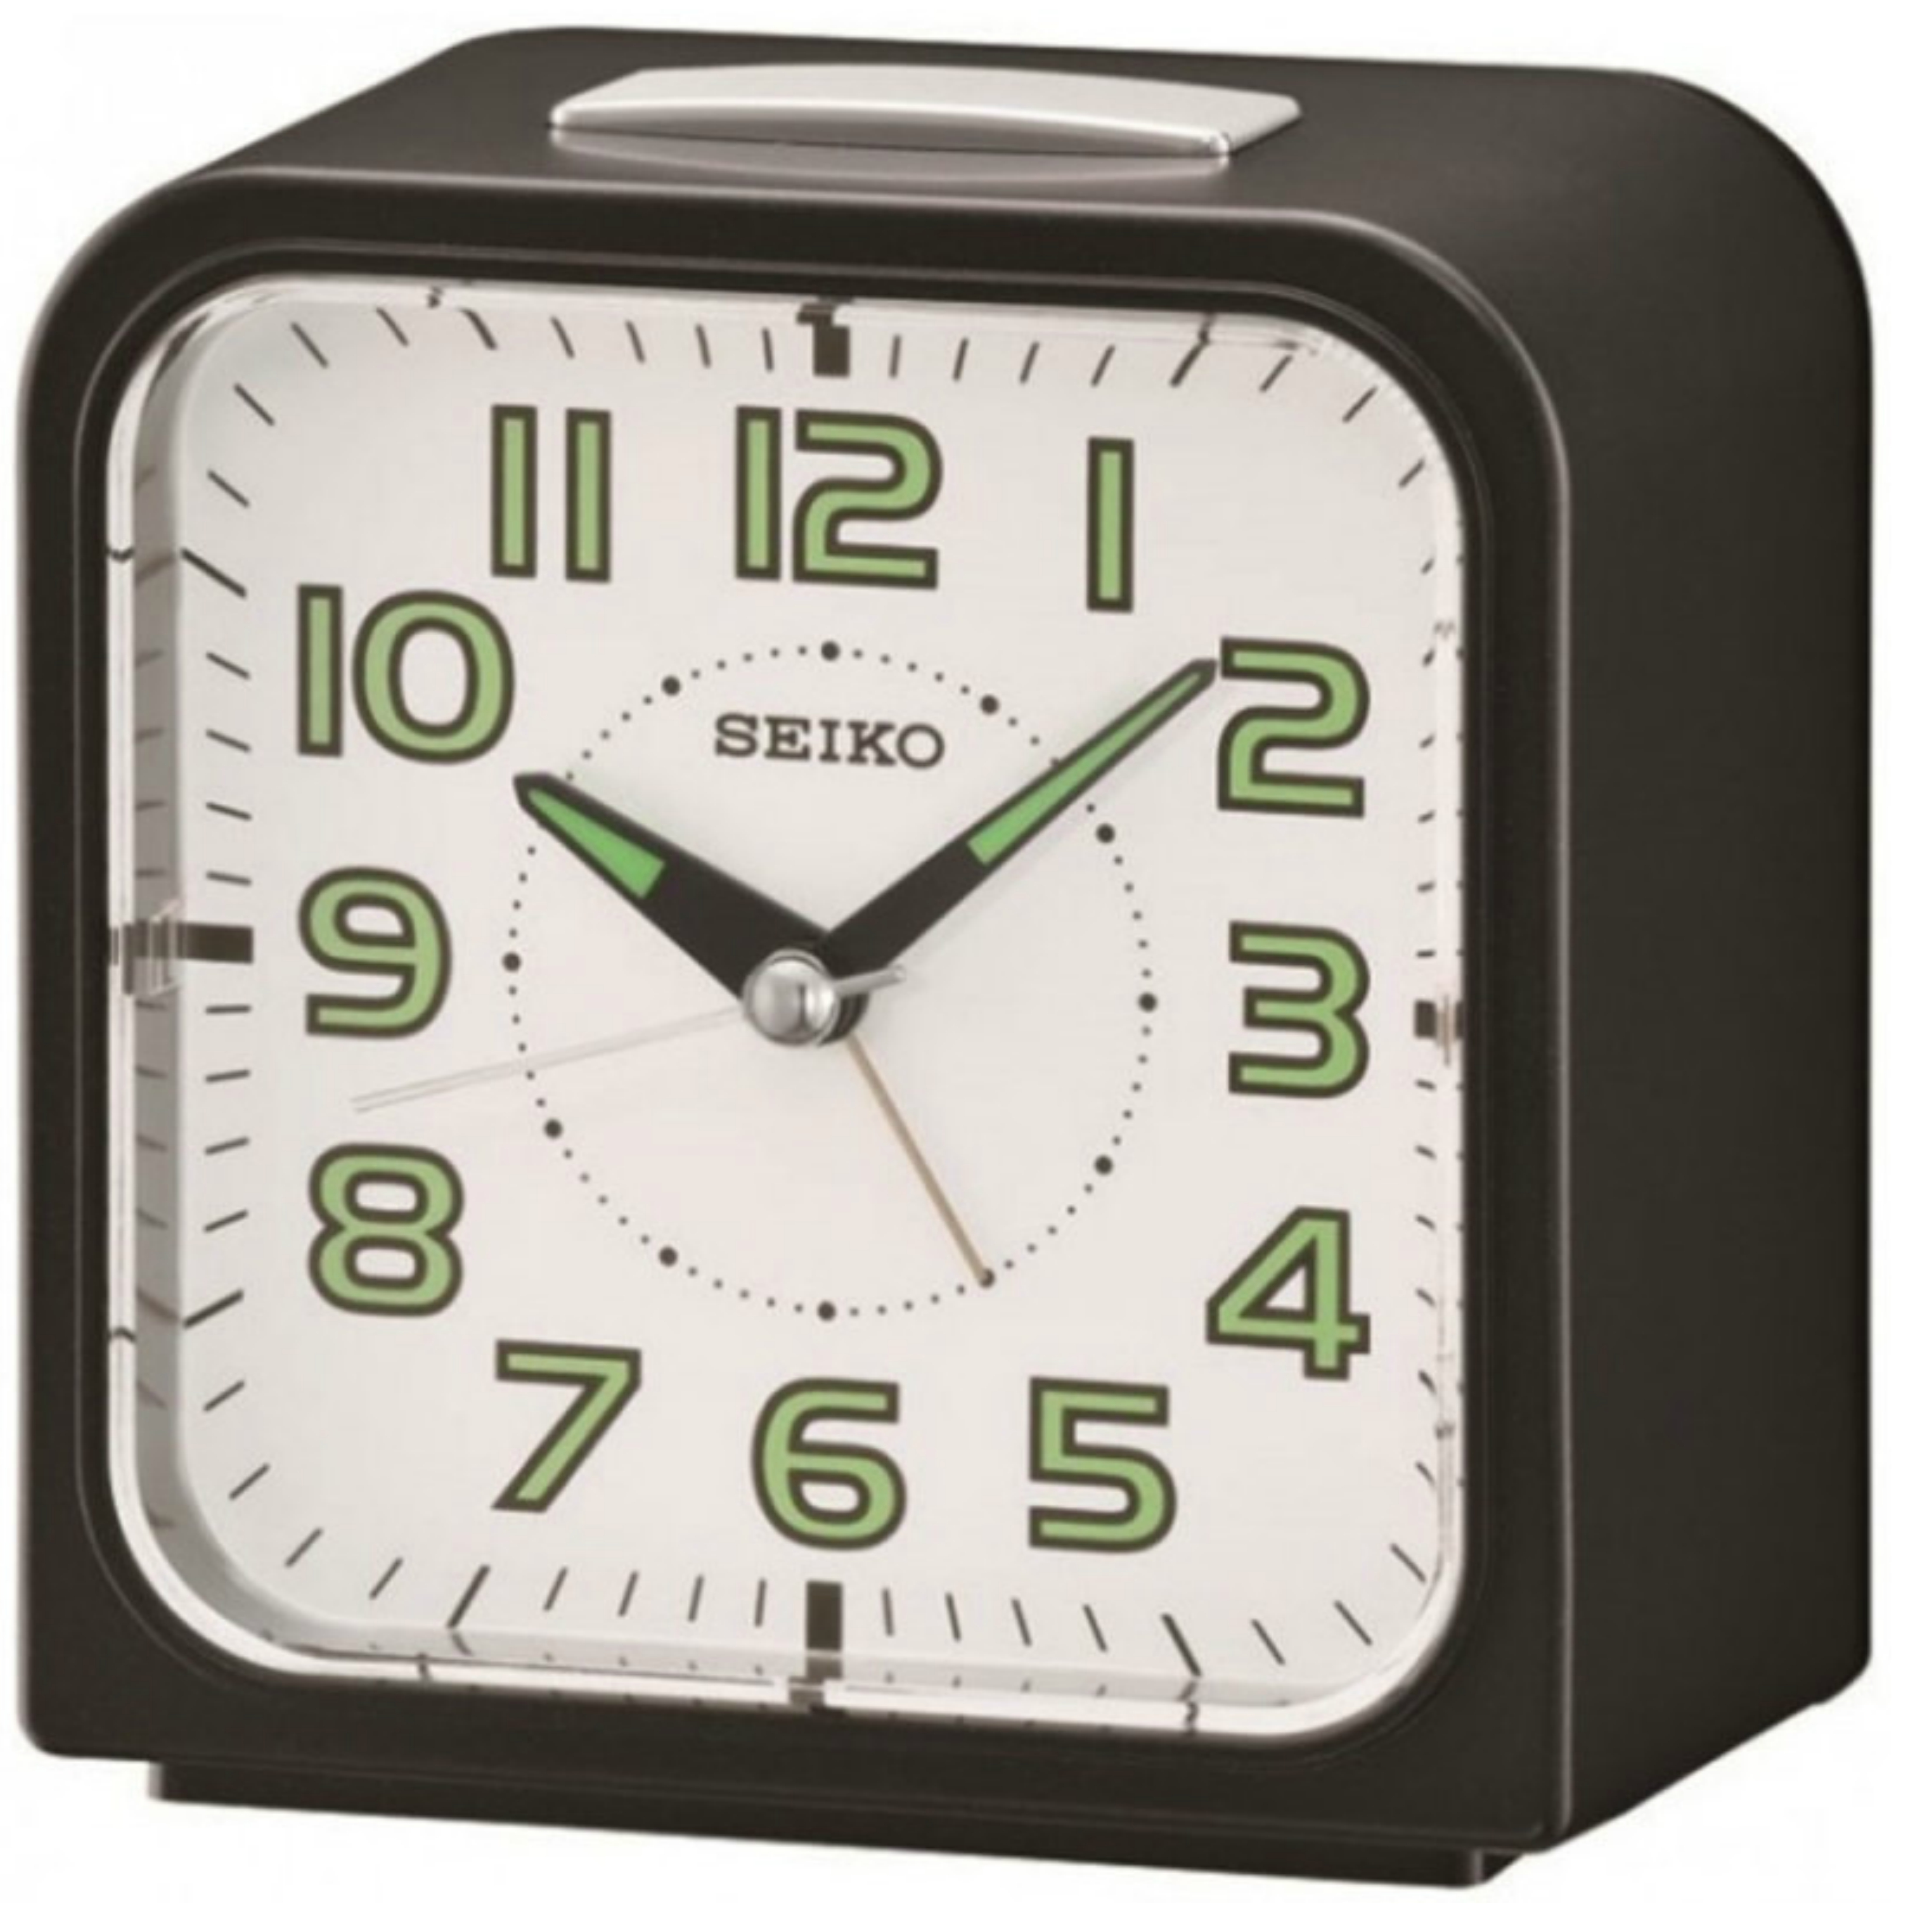 Seiko QHK025J Wecker Alarm Clock?Bell Alarm?Snooze?Black with White Face?